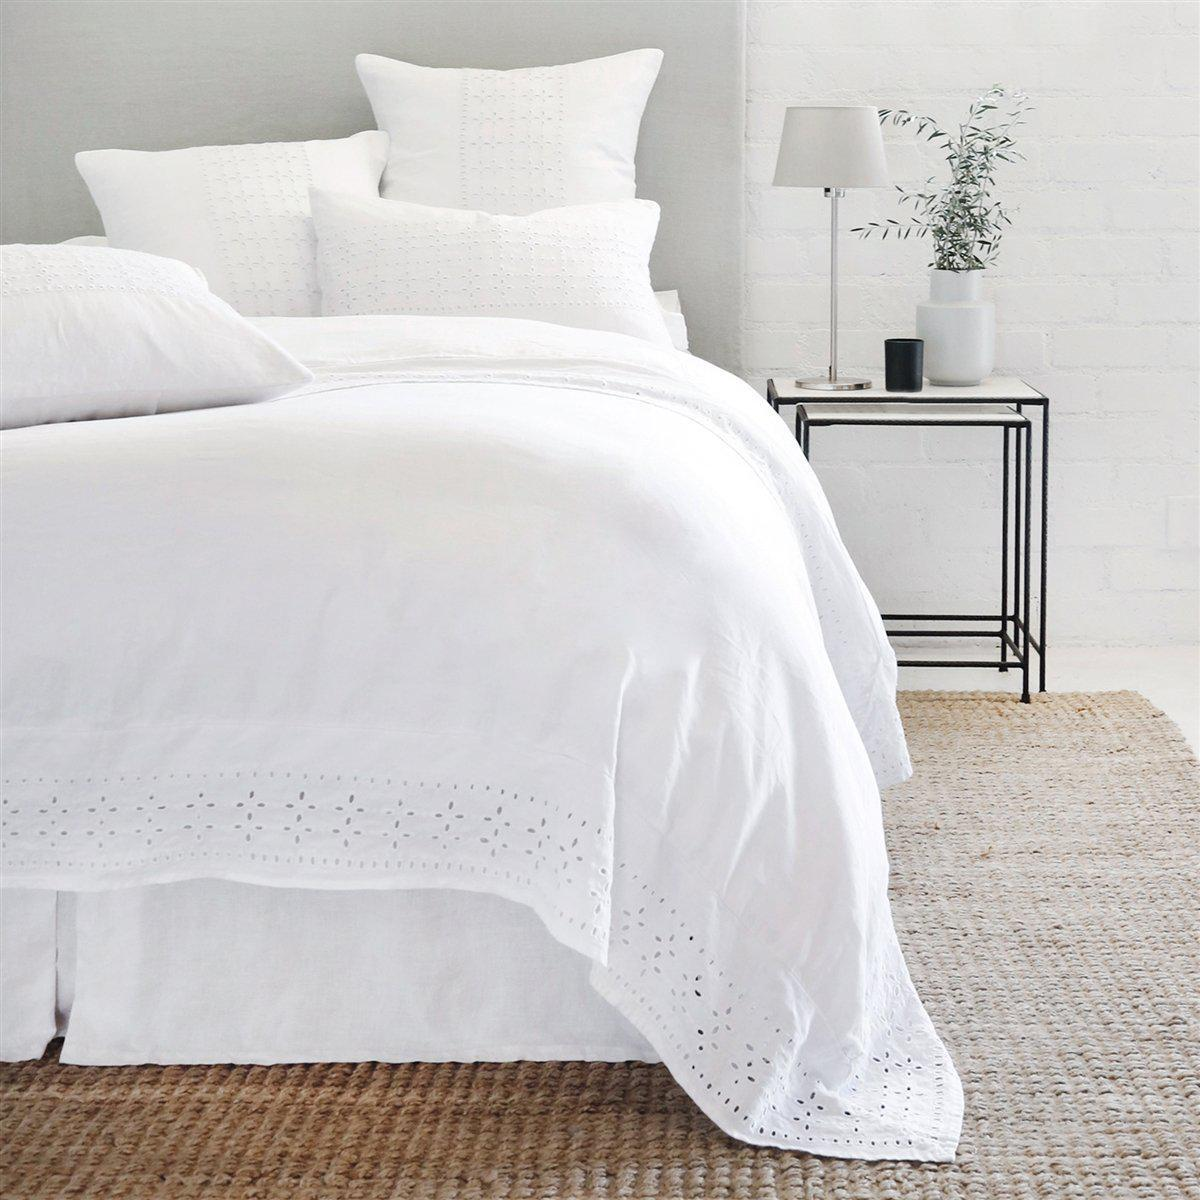 Layla Sham by Pom Pom at Home-Bed & Bath-Standard-White-A Cottage in the City